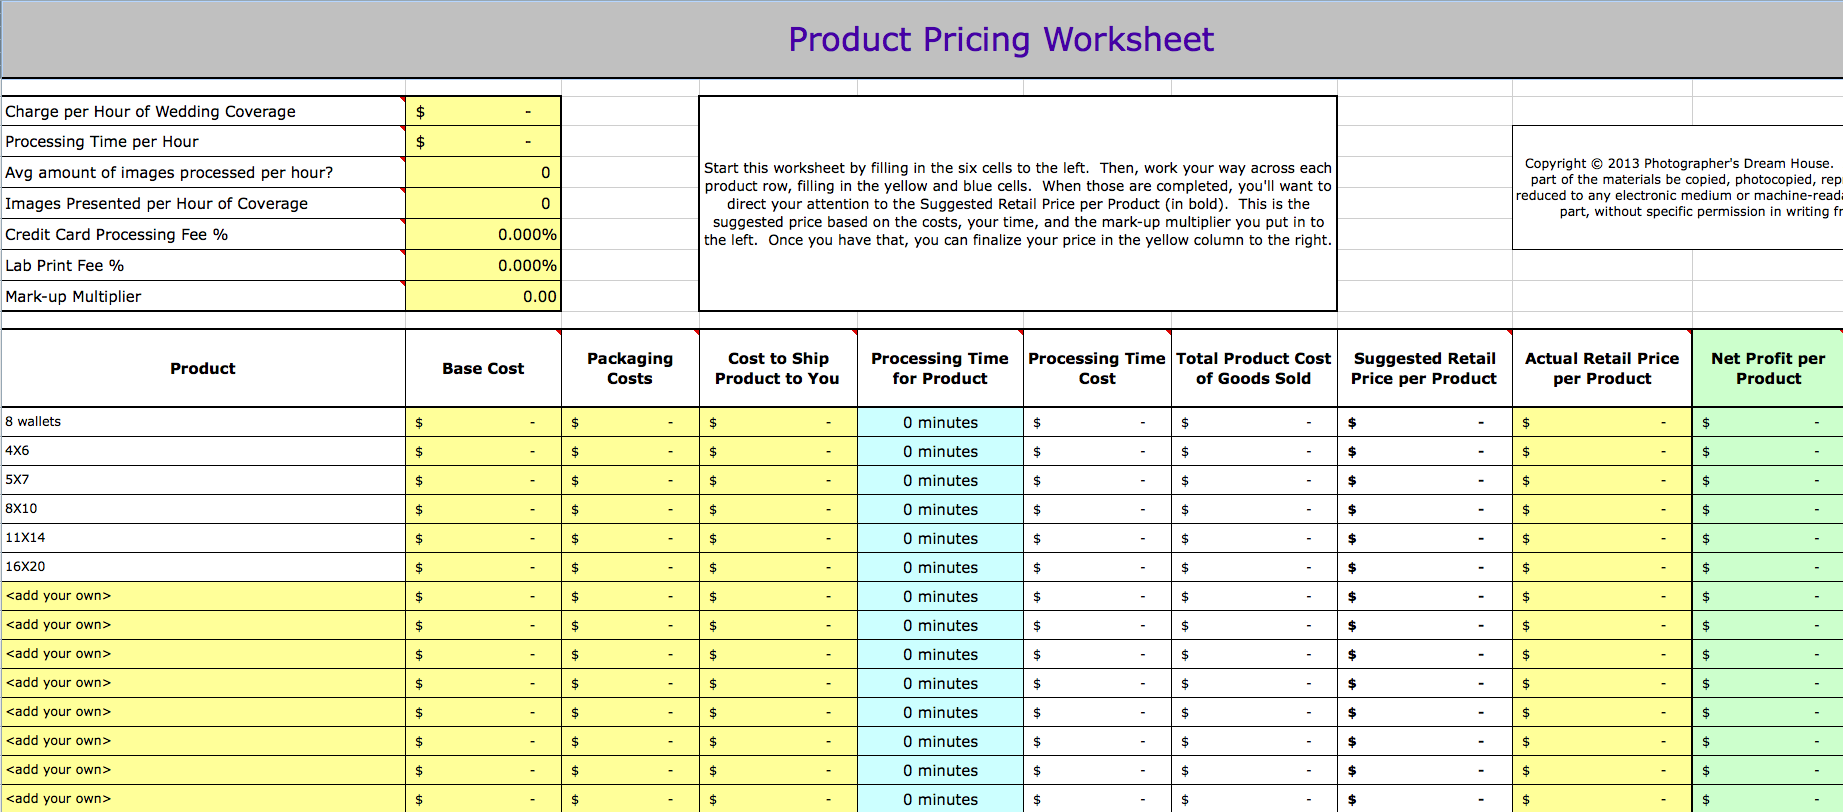 Wedding Photography Pricing Workbook